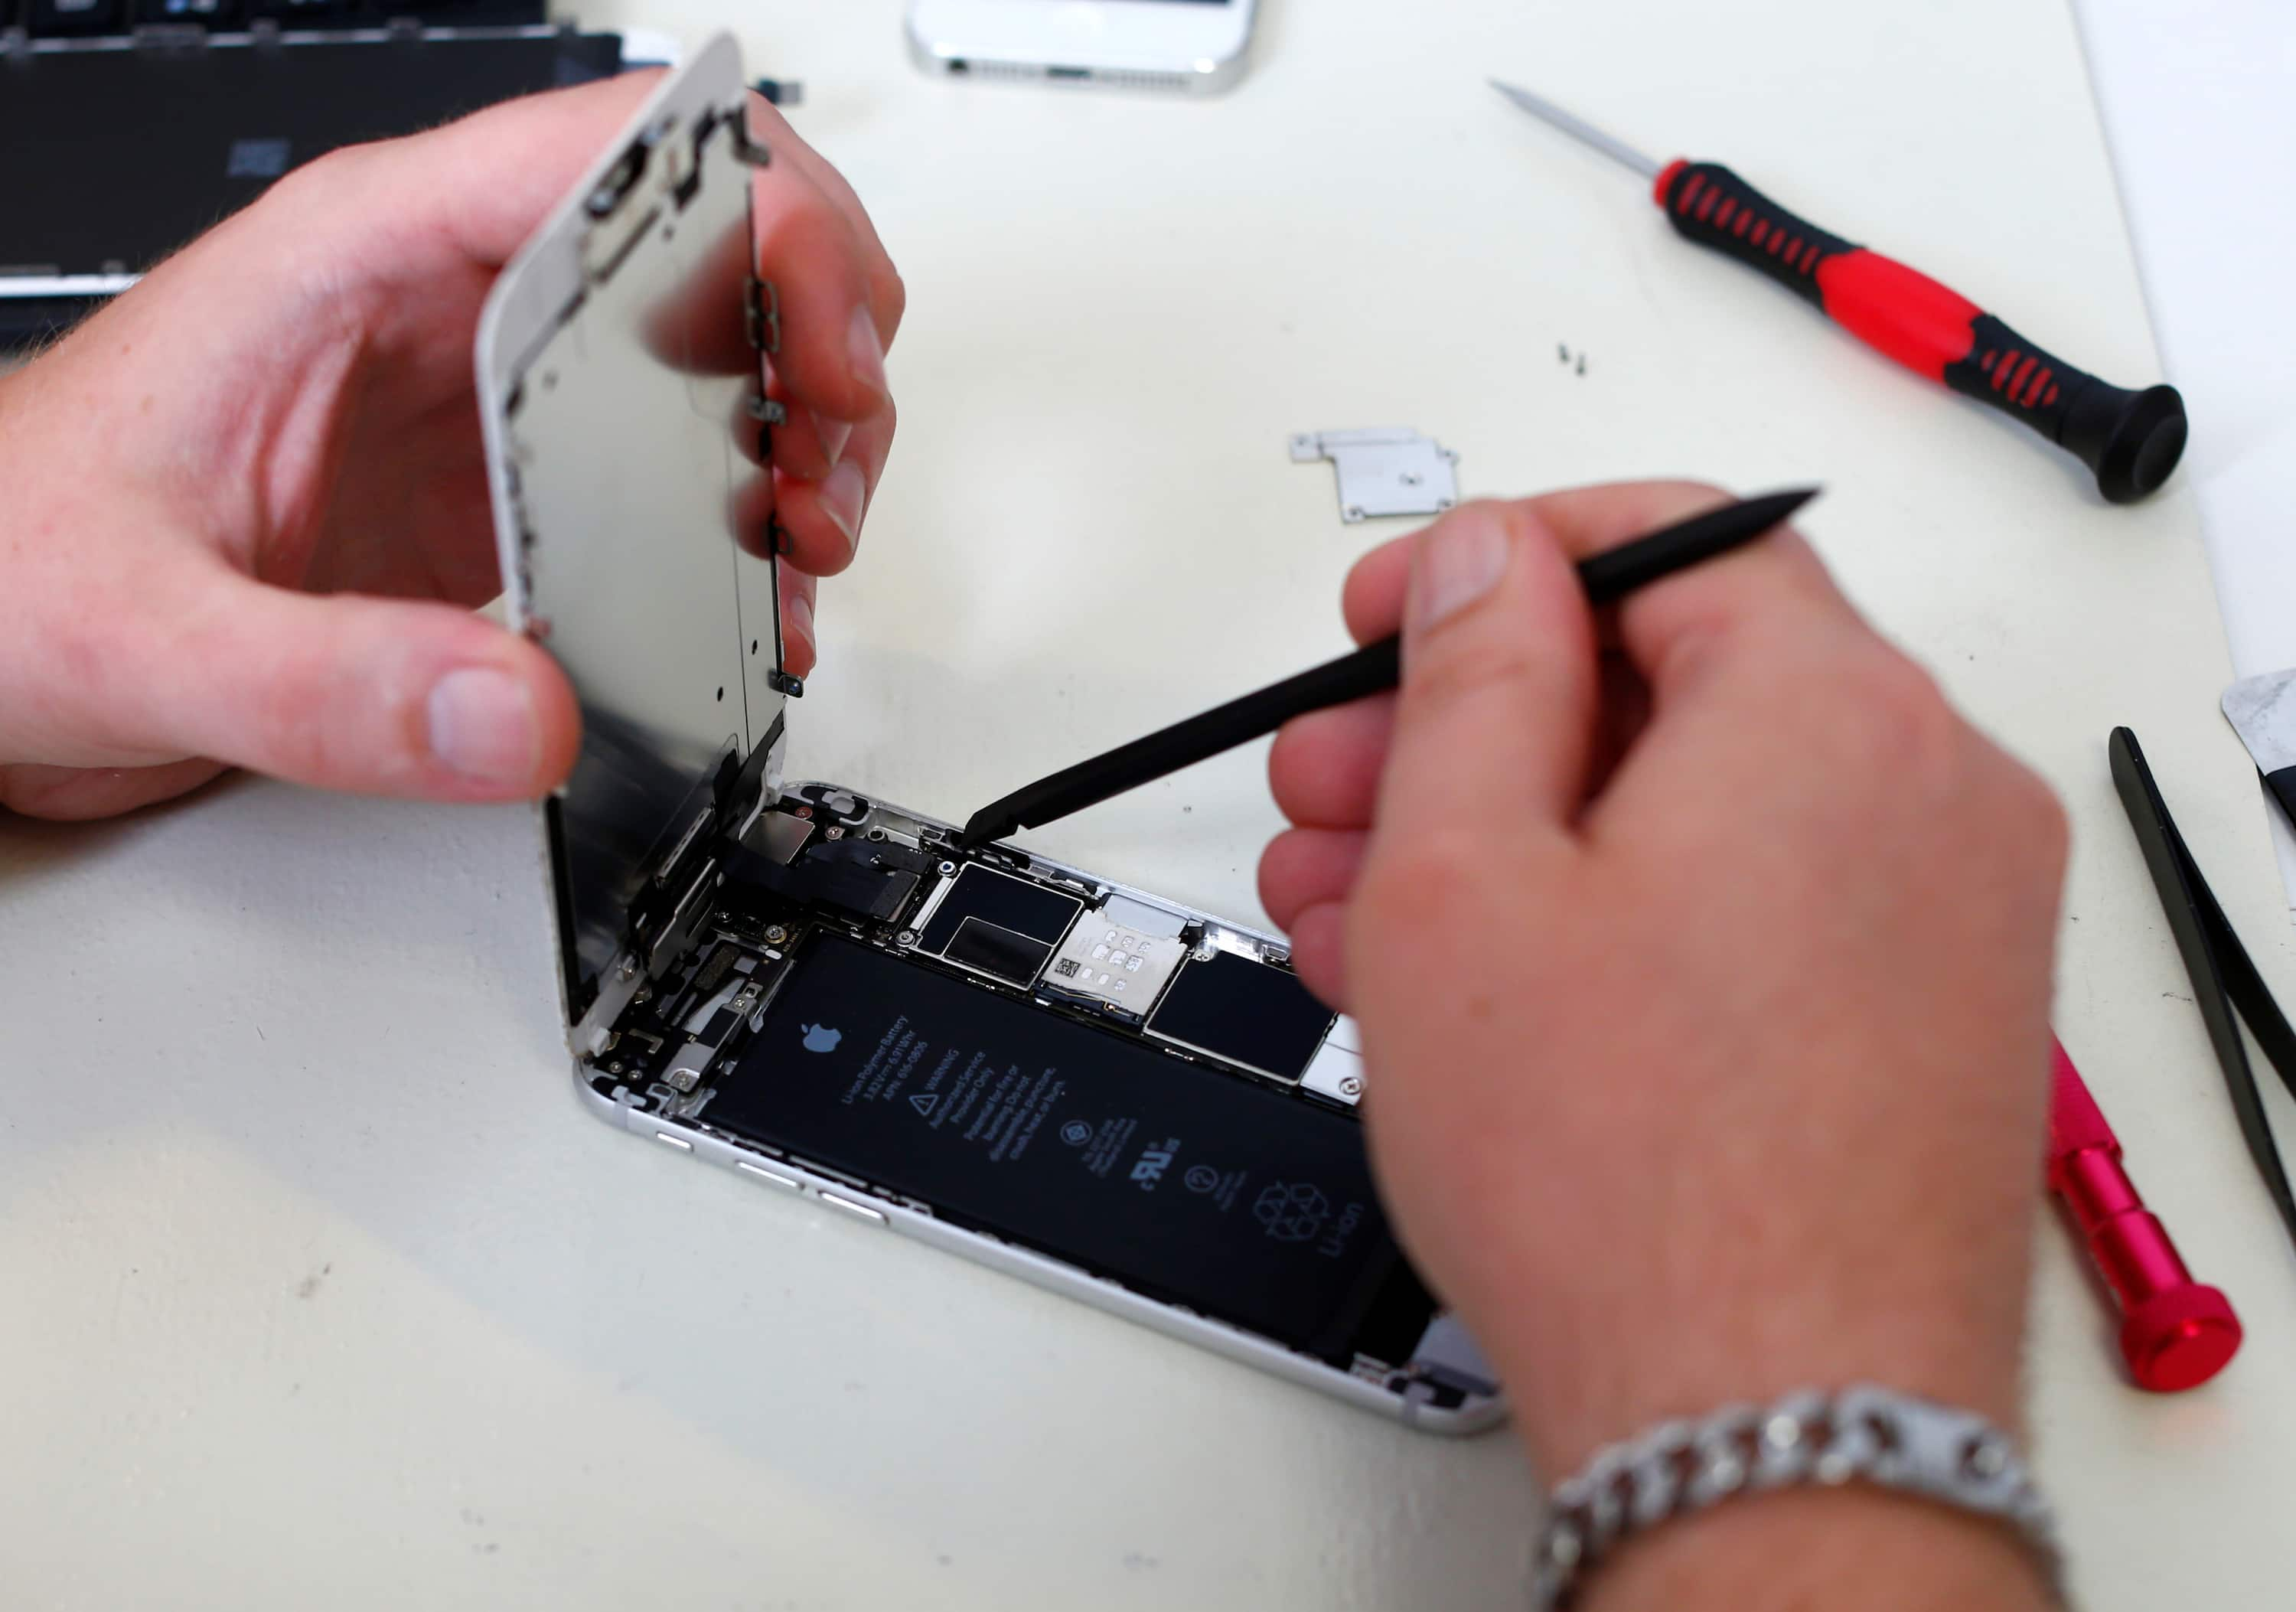 Someone opening up an iPhone with tools